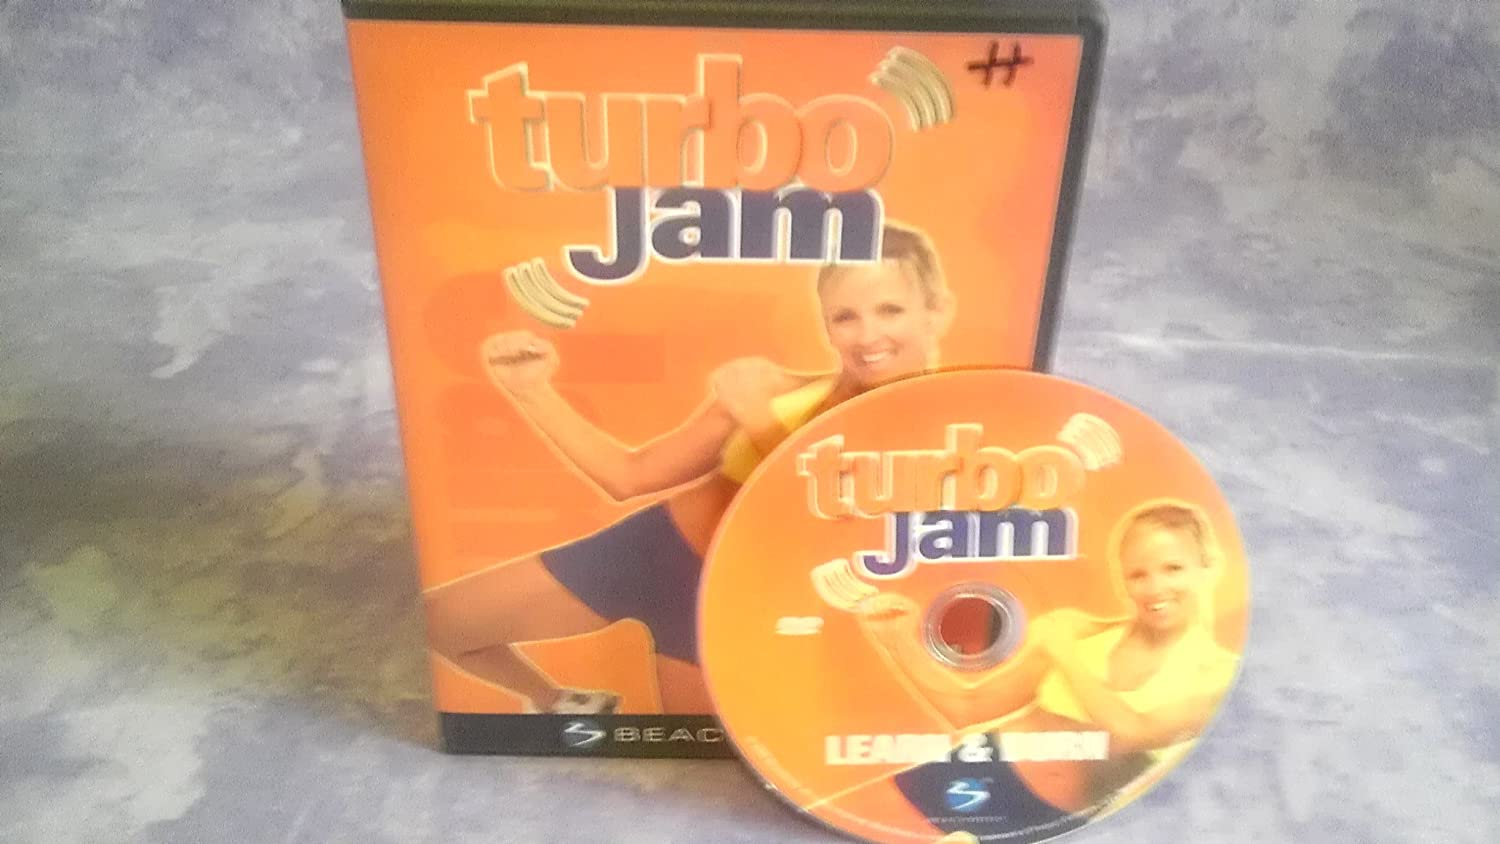 Turbo jam learn and burn video